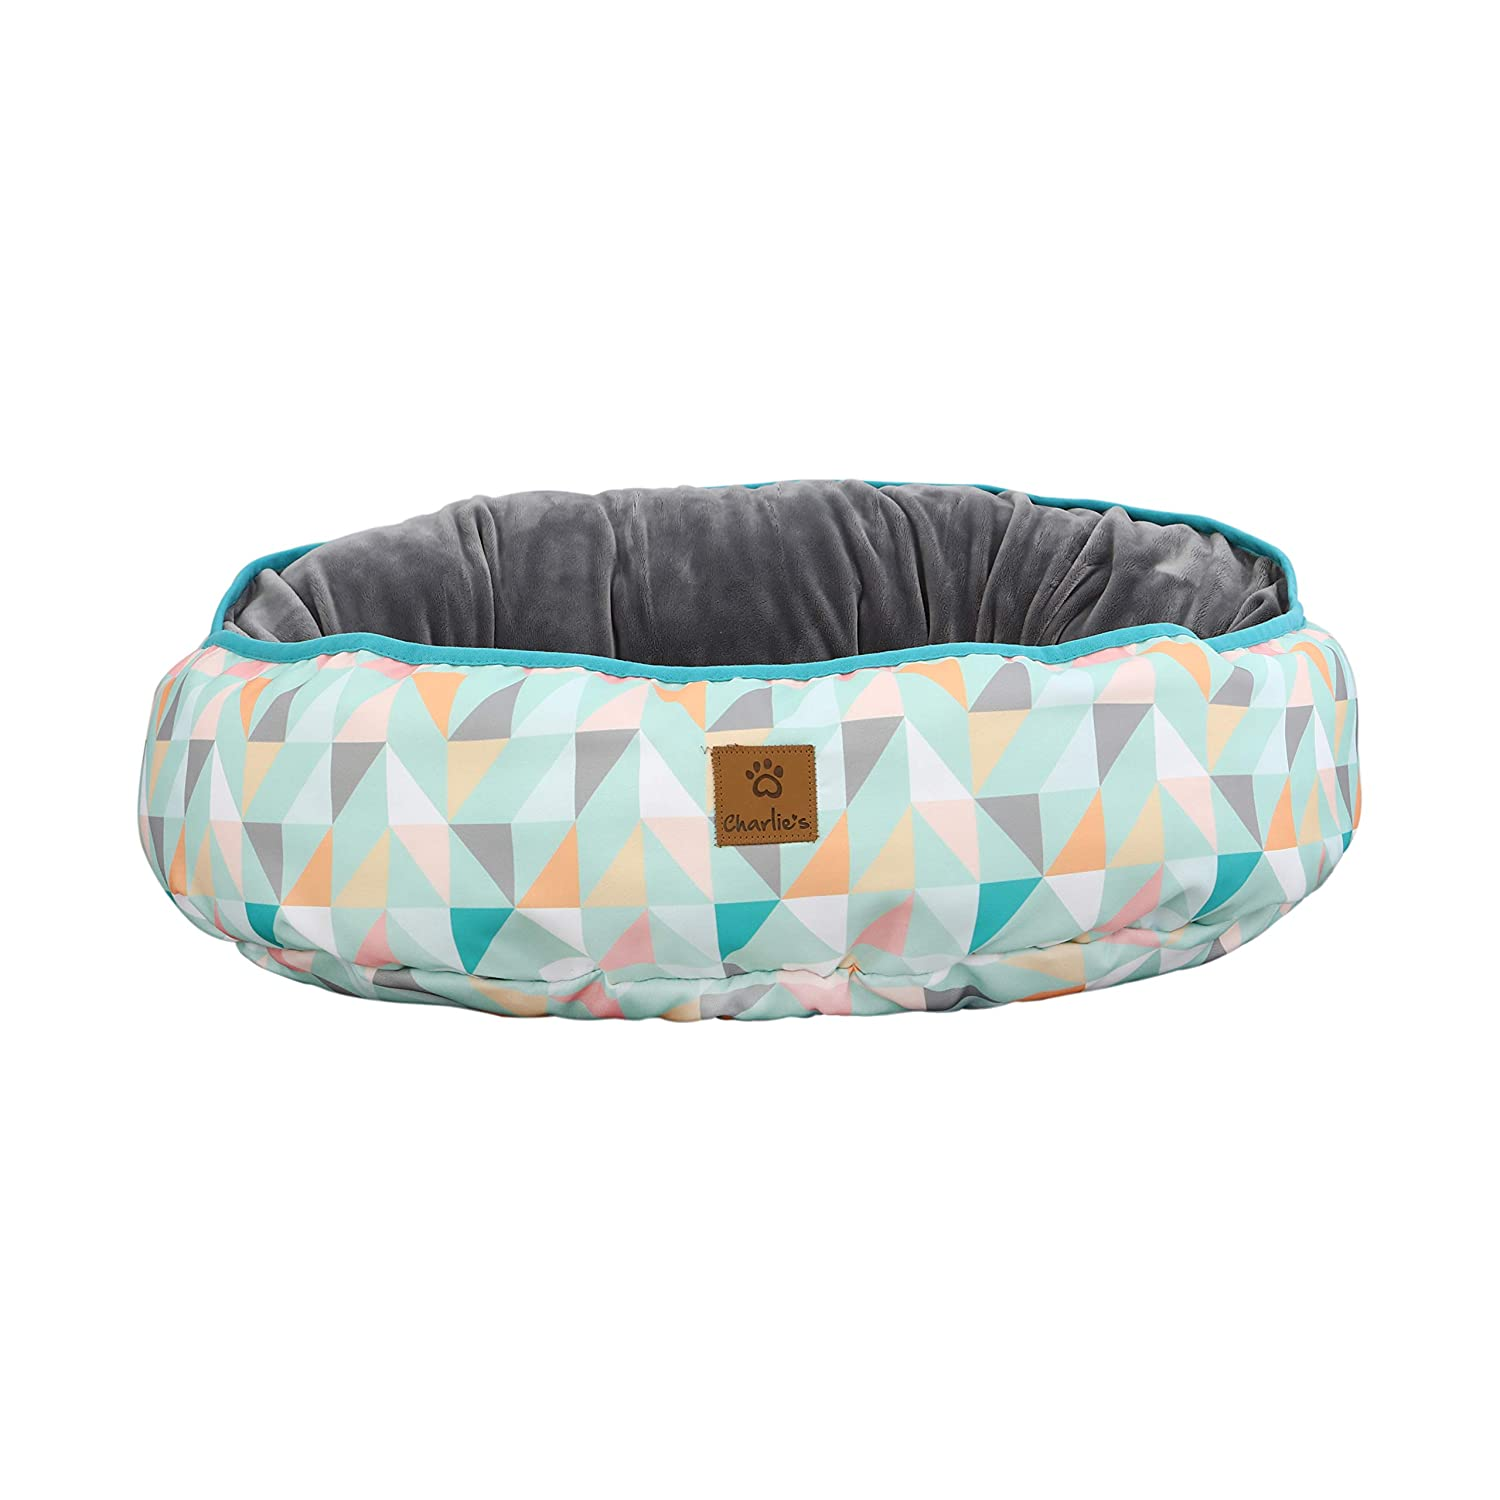 Charlie's Pet Bed for Dogs and Cats of All Sizes Reversible Fun Oval Pad Green Triangle MEDIUM-65 x 74 x 15cm